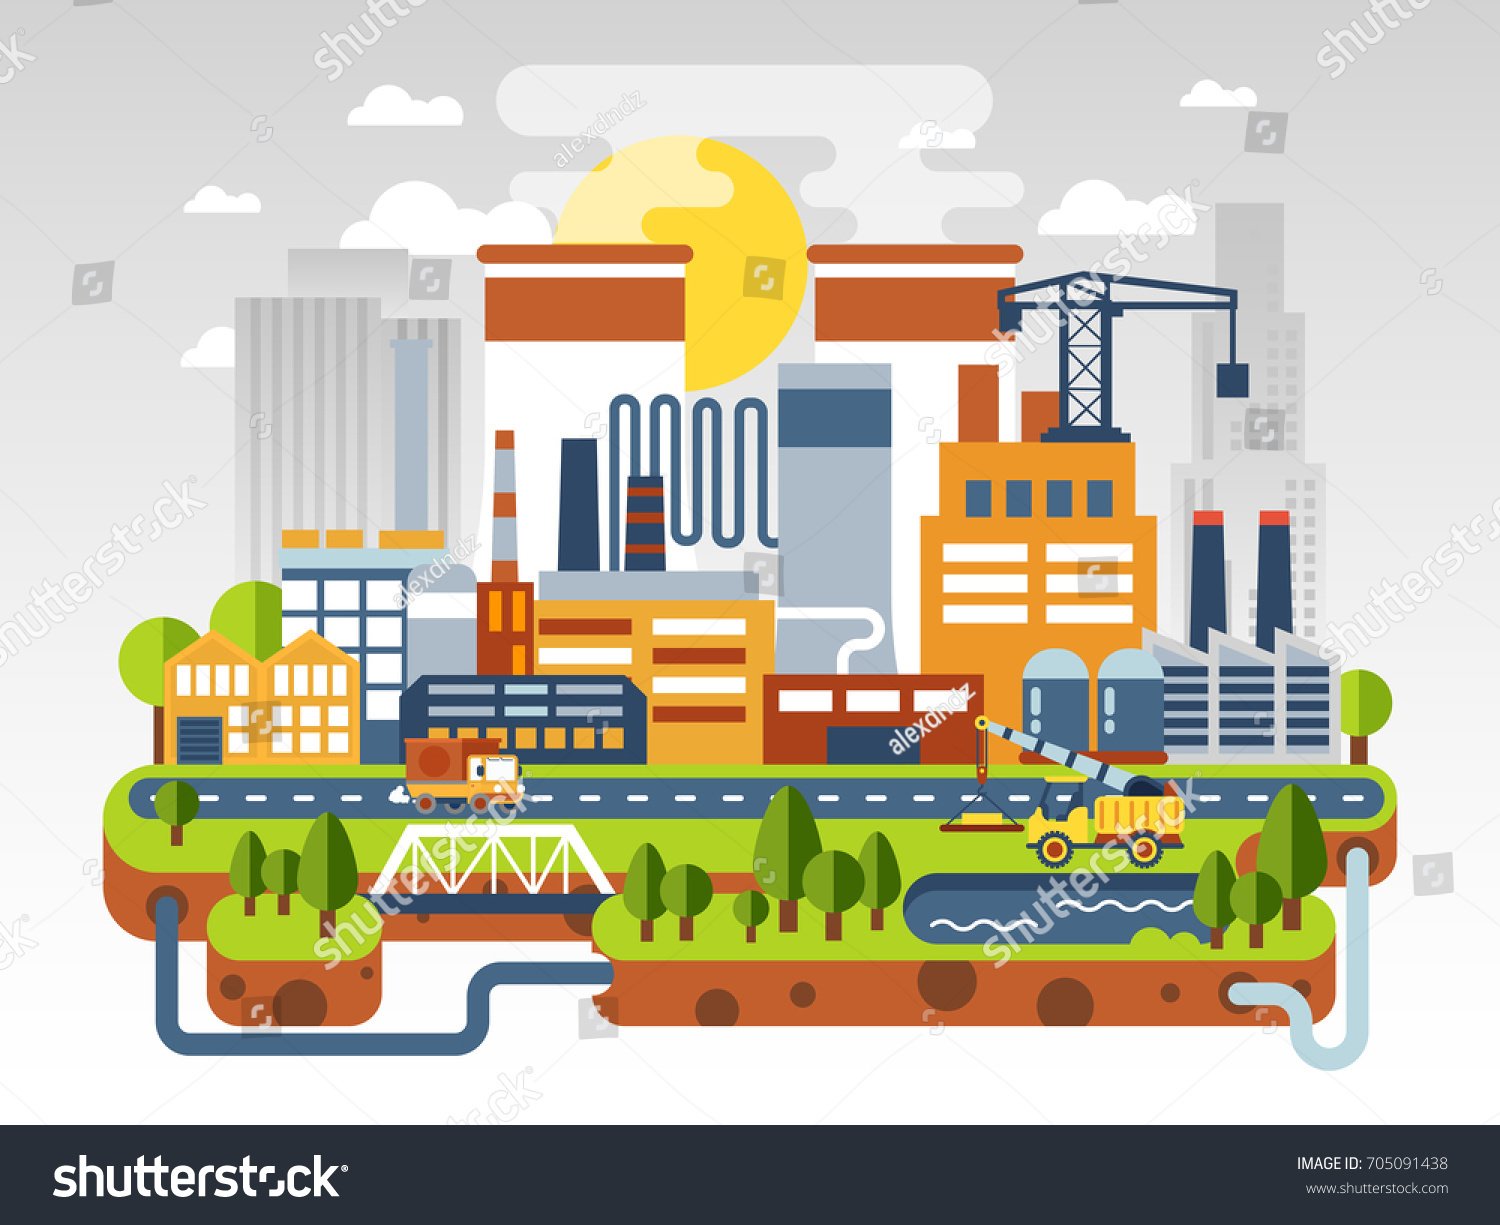 Flat Industrial Landscape Nuclear Power Plant Stock Vector Royalty Diagram And Explanation The Factory On Background Of City